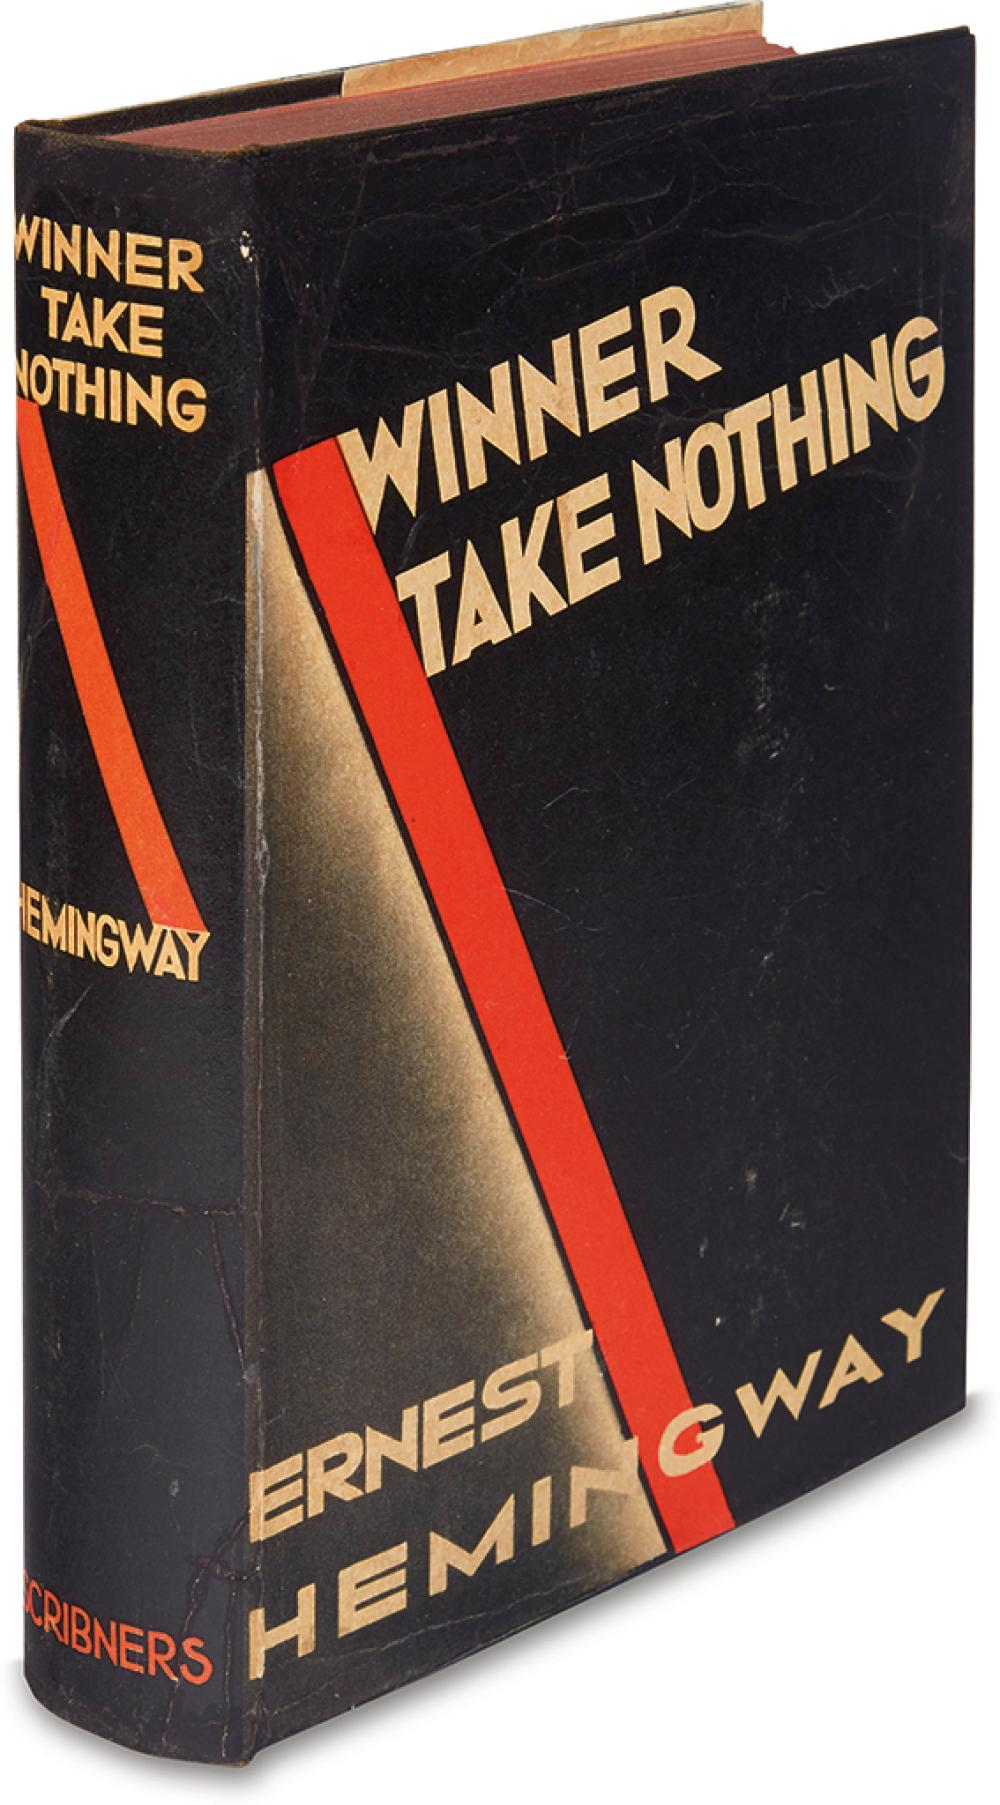 HEMINGWAY, ERNEST. Winner Take Nothing.